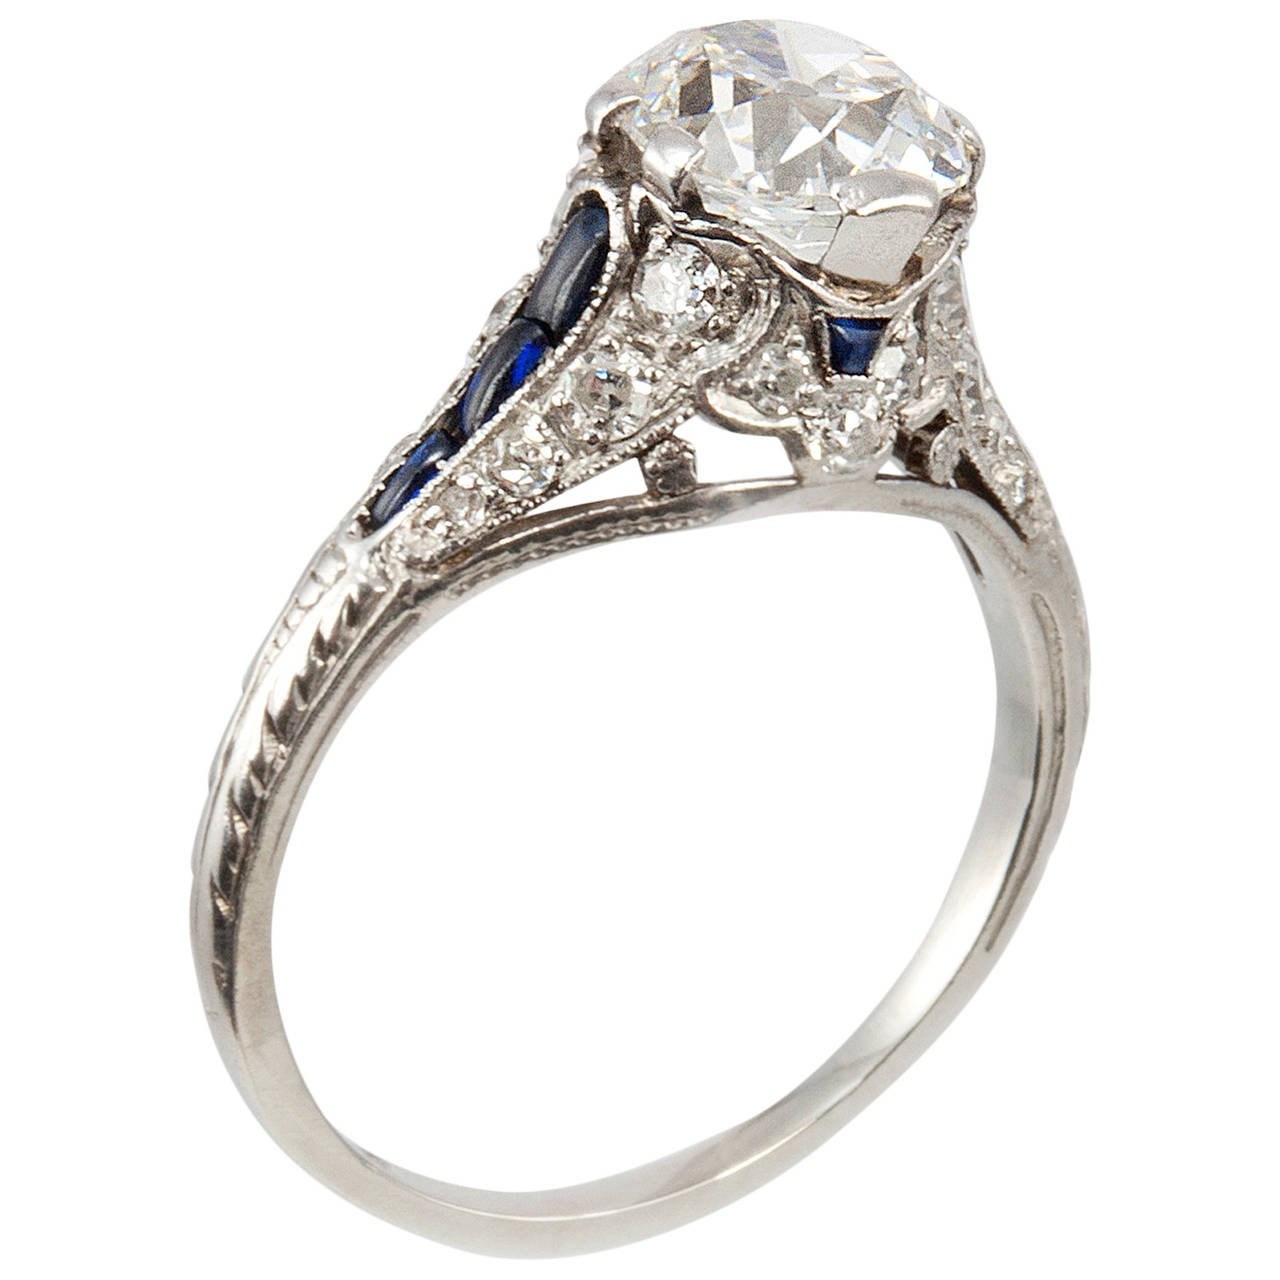 1.57 Carat Cushion Cut Diamond Antique Engagement Ring with Sapphires